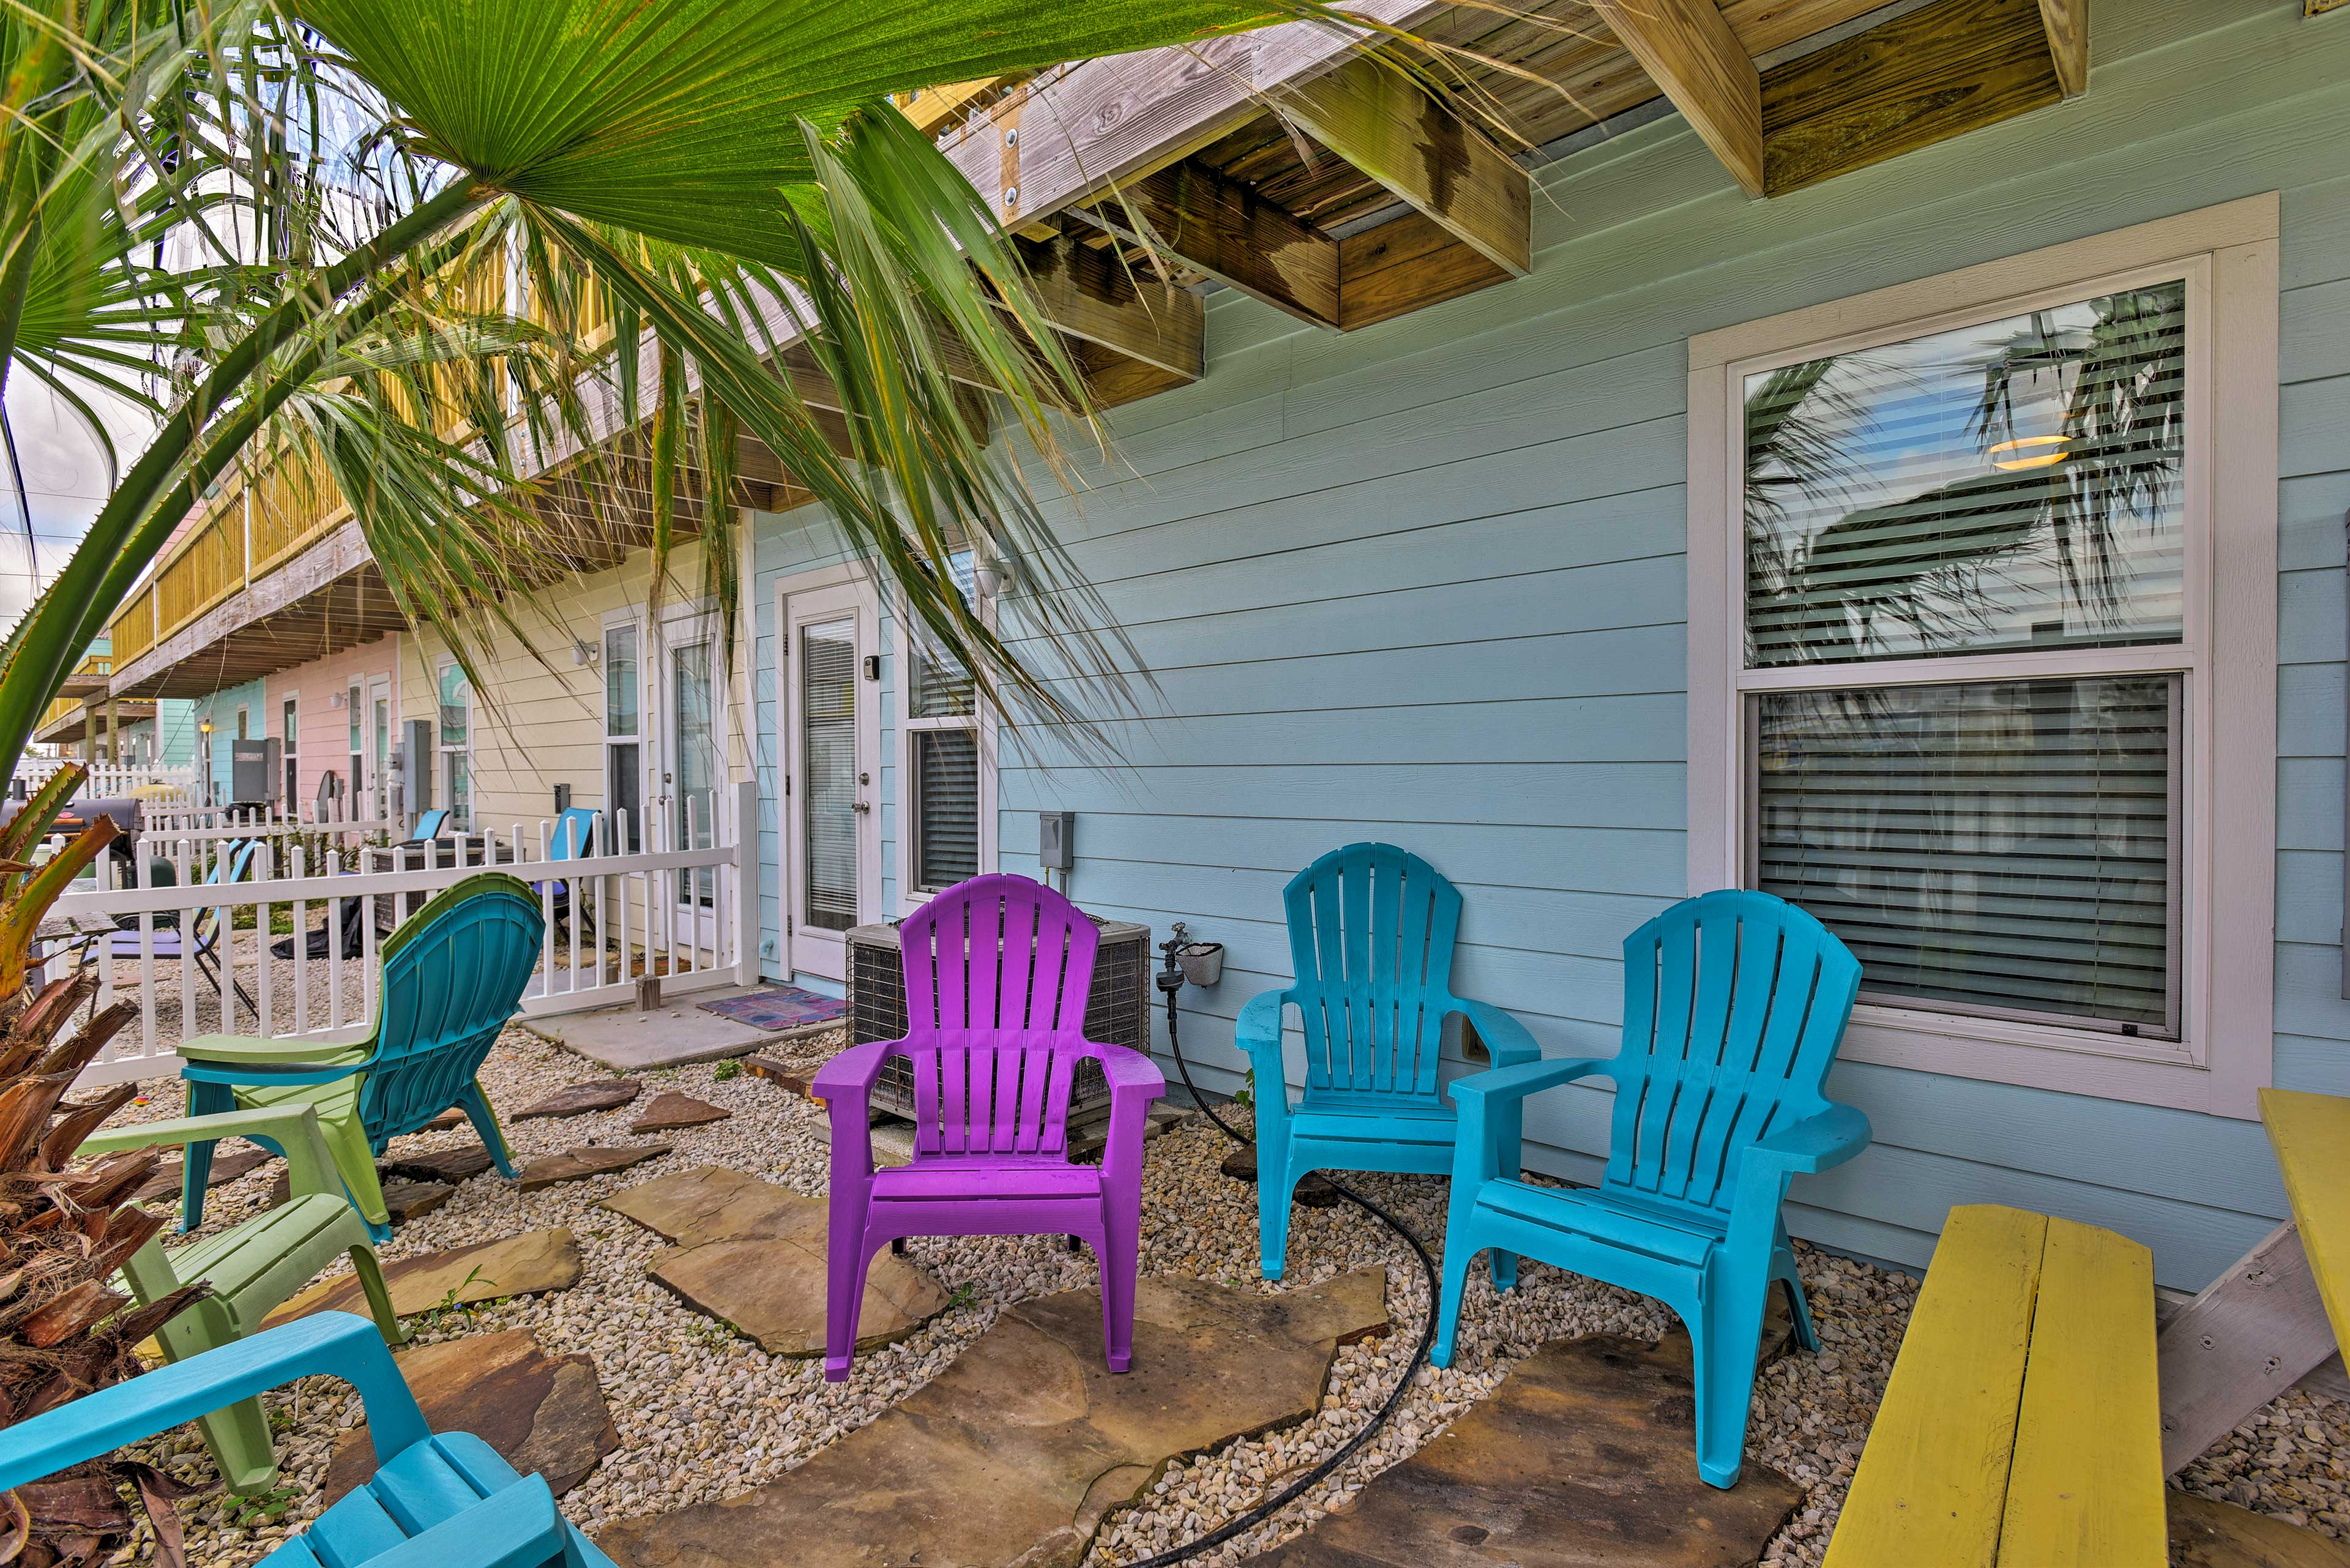 This vacation rental condo offers 4 bedrooms and 3 baths for 8 guests.